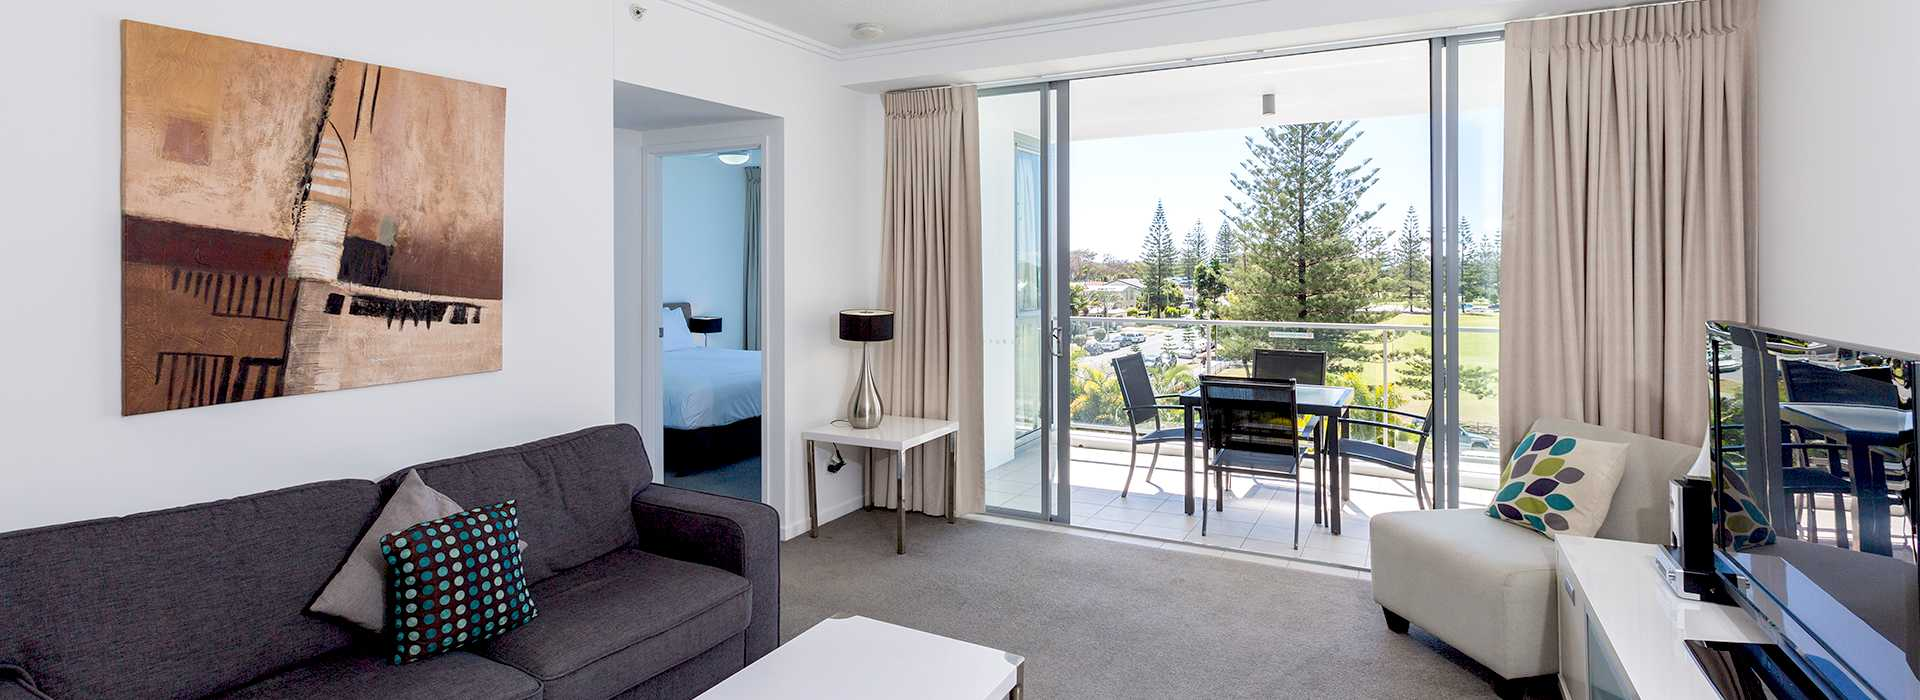 2 Bedroom Family Apartments Broadbeach Ocean Pacific Resort